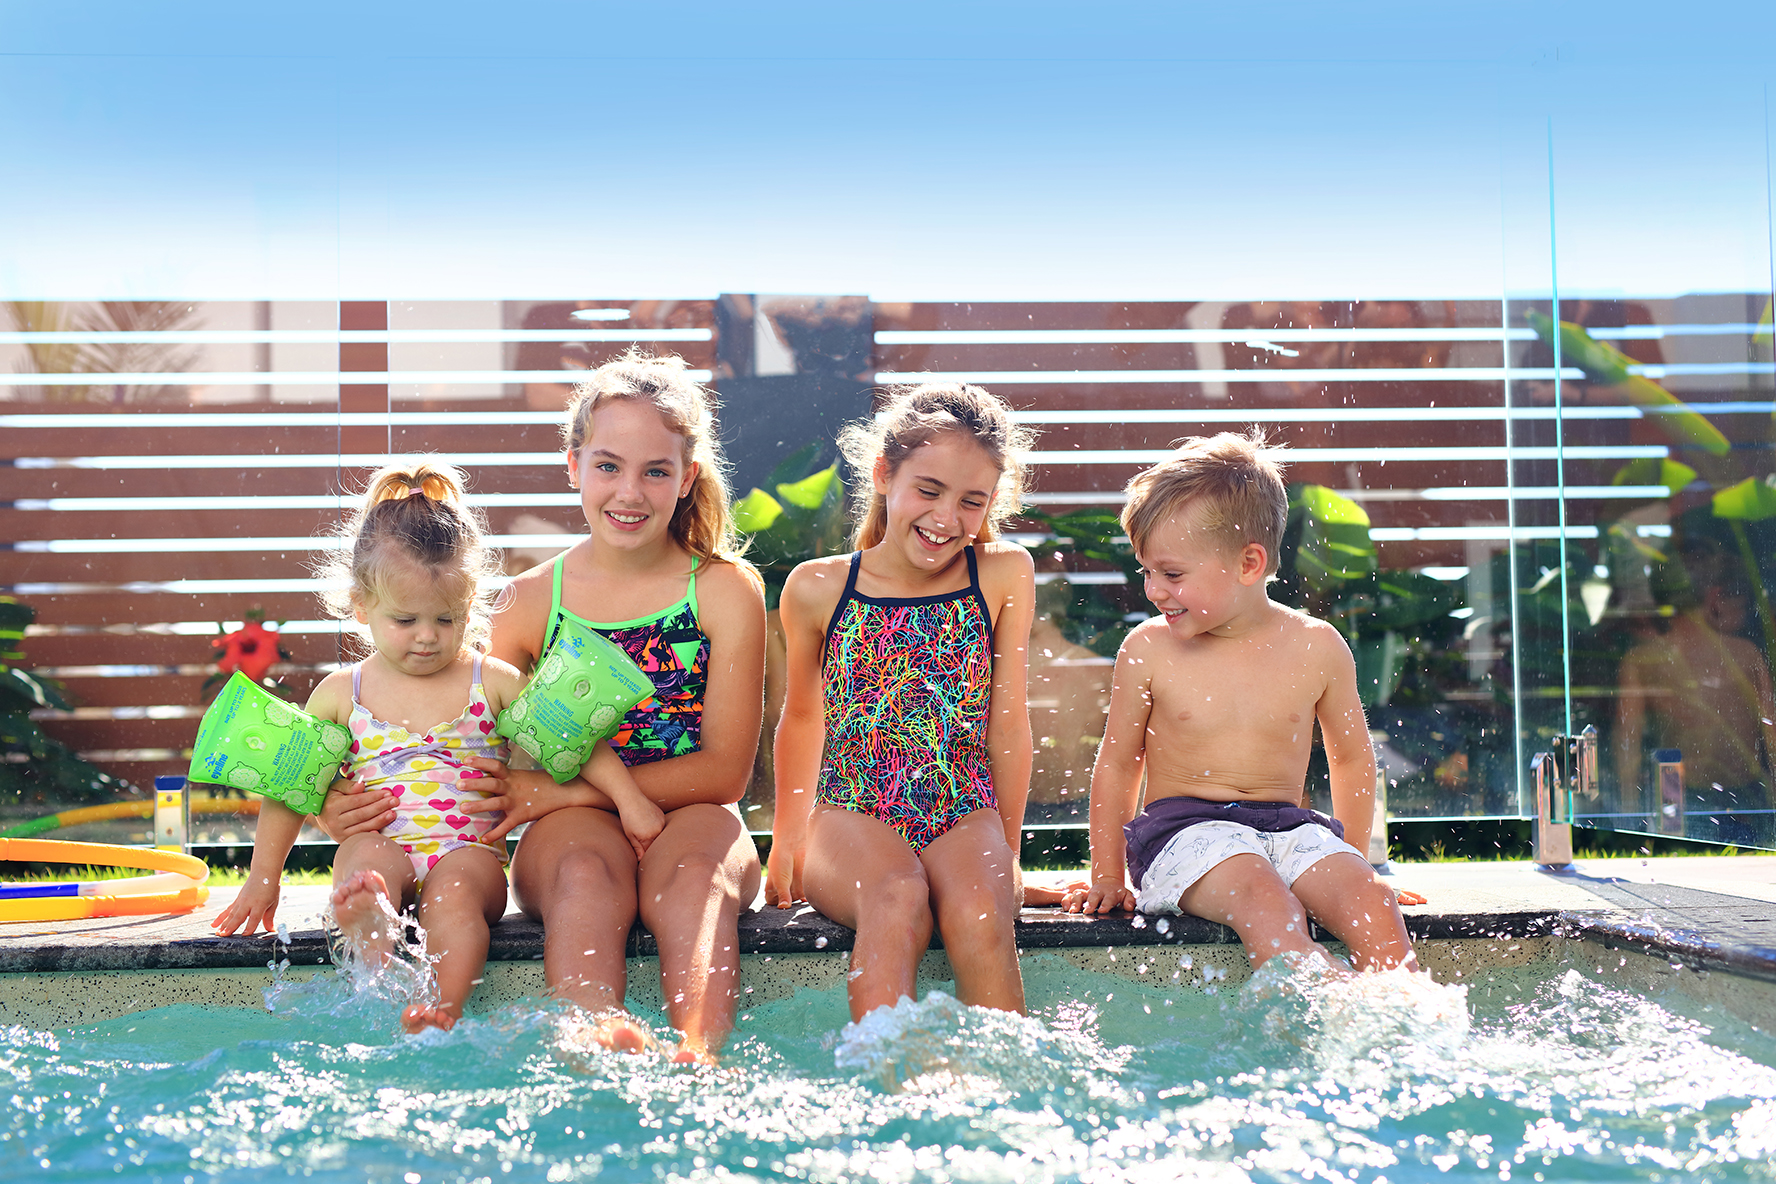 Kids sitting by residential pool